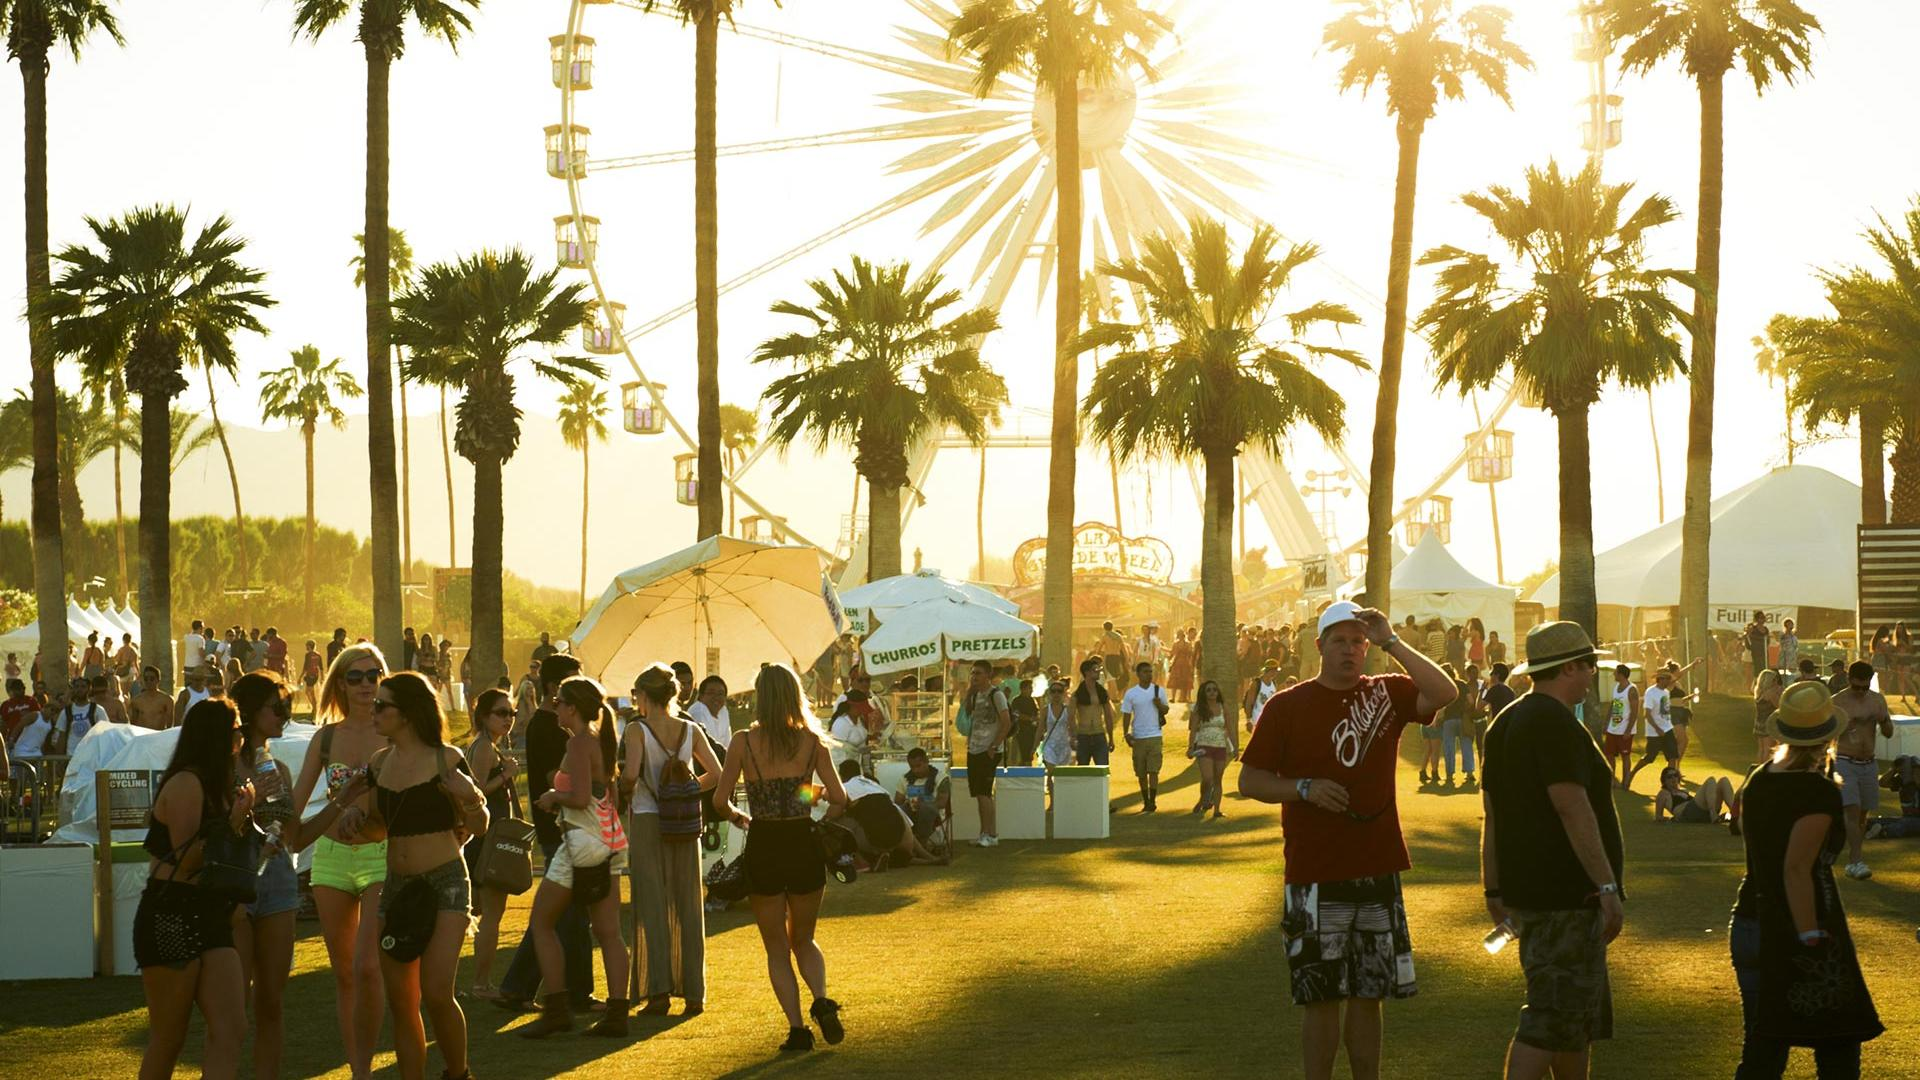 Crowds at Coachella Valley Music and Arts Festival 2016